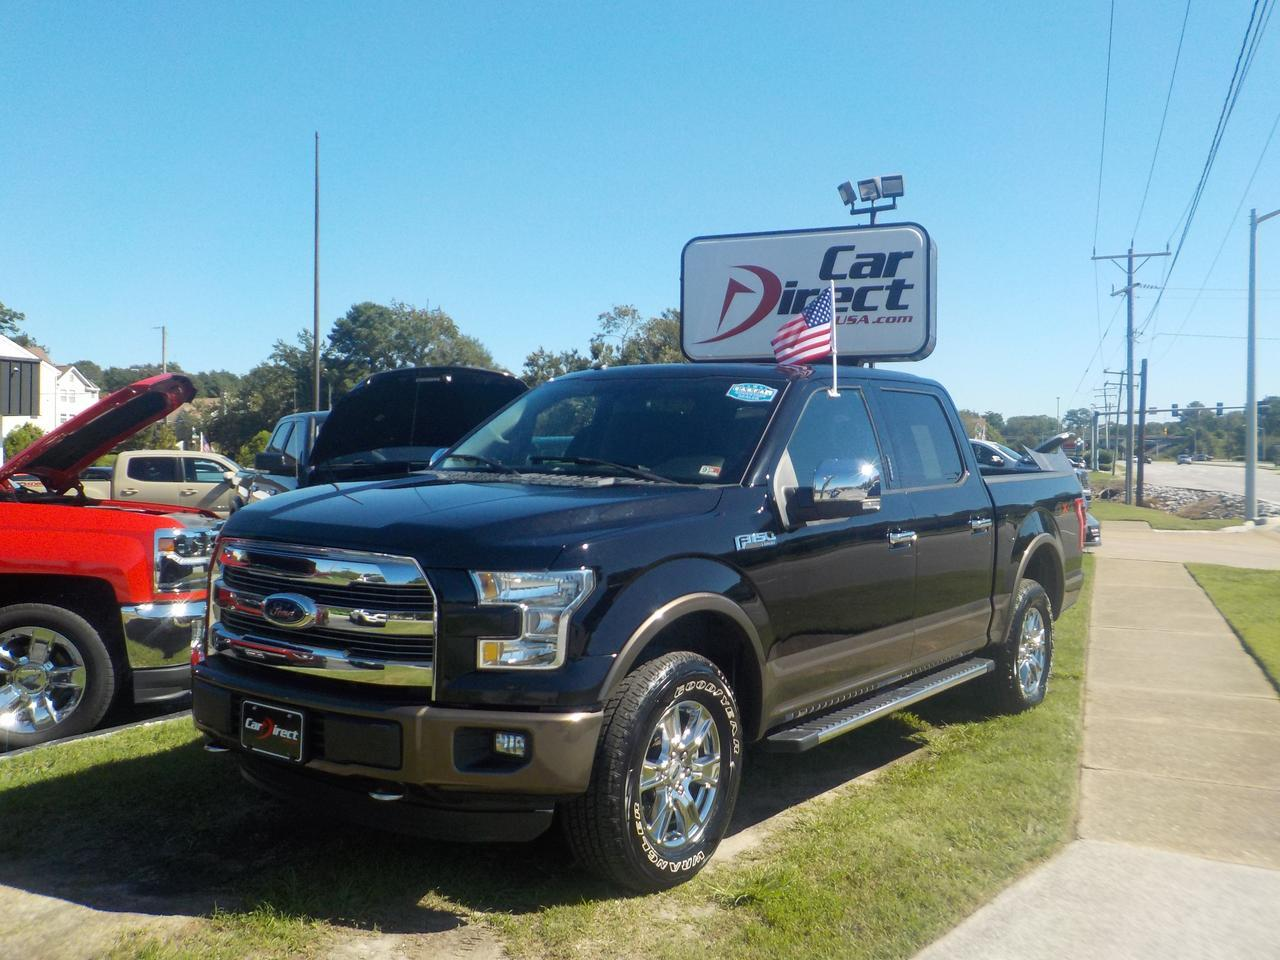 2016 FORD F-150 LARIAT CREW CAB 4X4, LEATHER, NAV, HEATED/COOLED SEATS, BACKUP CAM, PARKING SENSORS, 1 OWNER! Virginia Beach VA